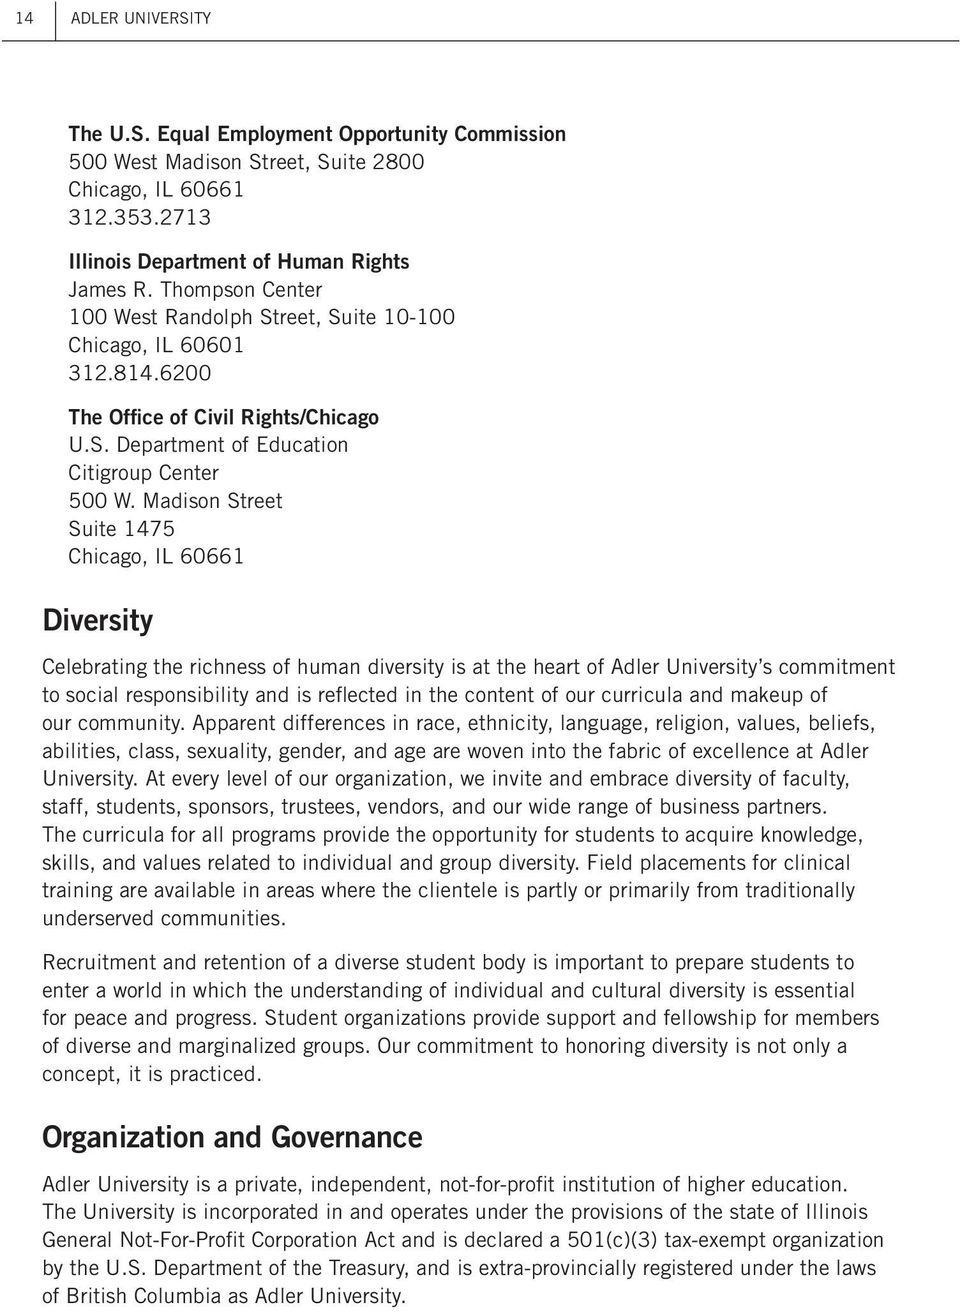 Madison Street Suite 1475 Chicago, IL 60661 Diversity Celebrating the richness of human diversity is at the heart of Adler University s commitment to social responsibility and is reflected in the